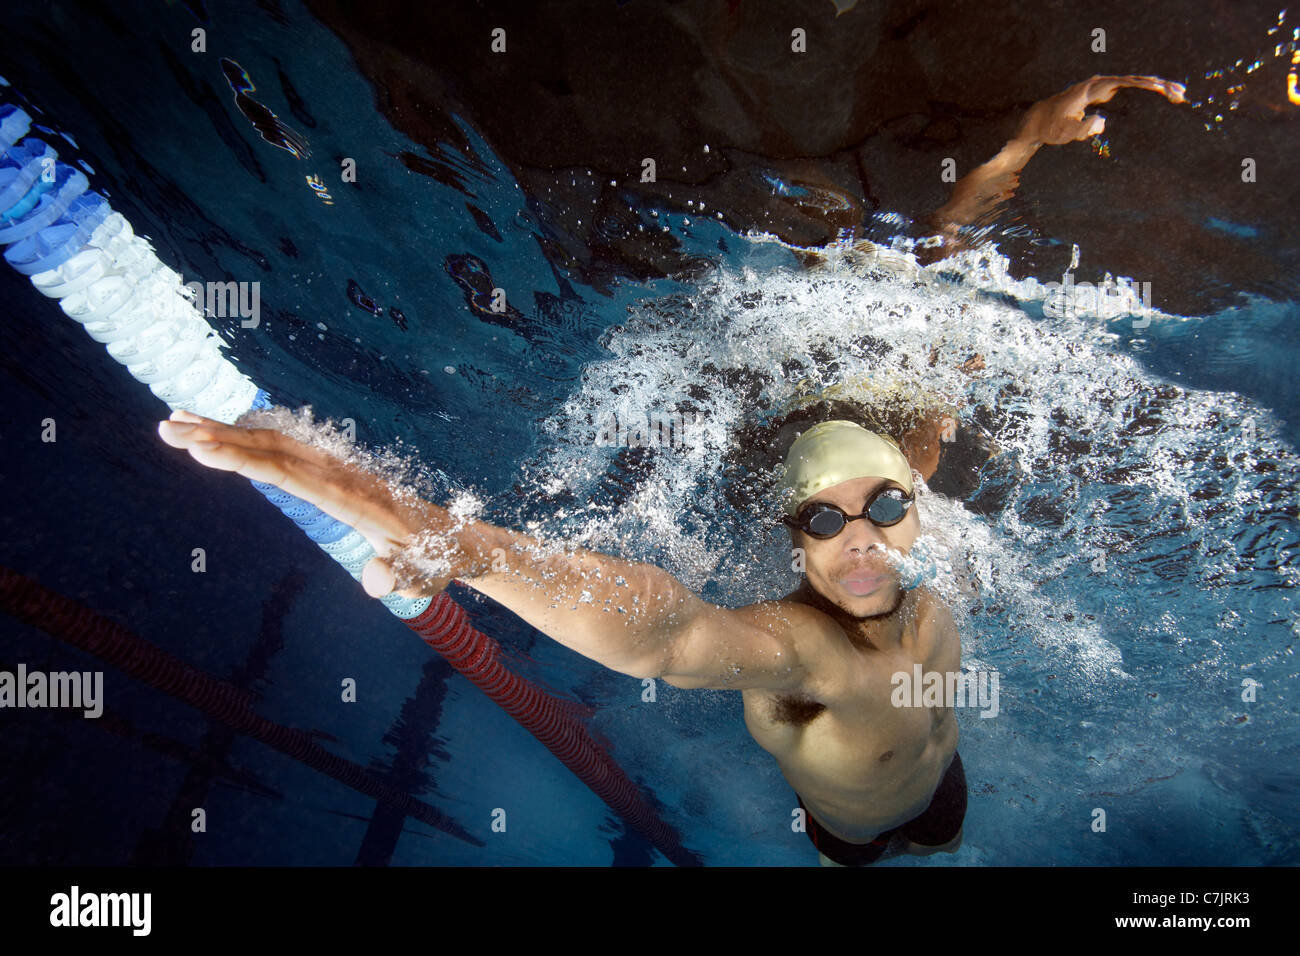 Swimmer doing front crawl in pool - Stock Image